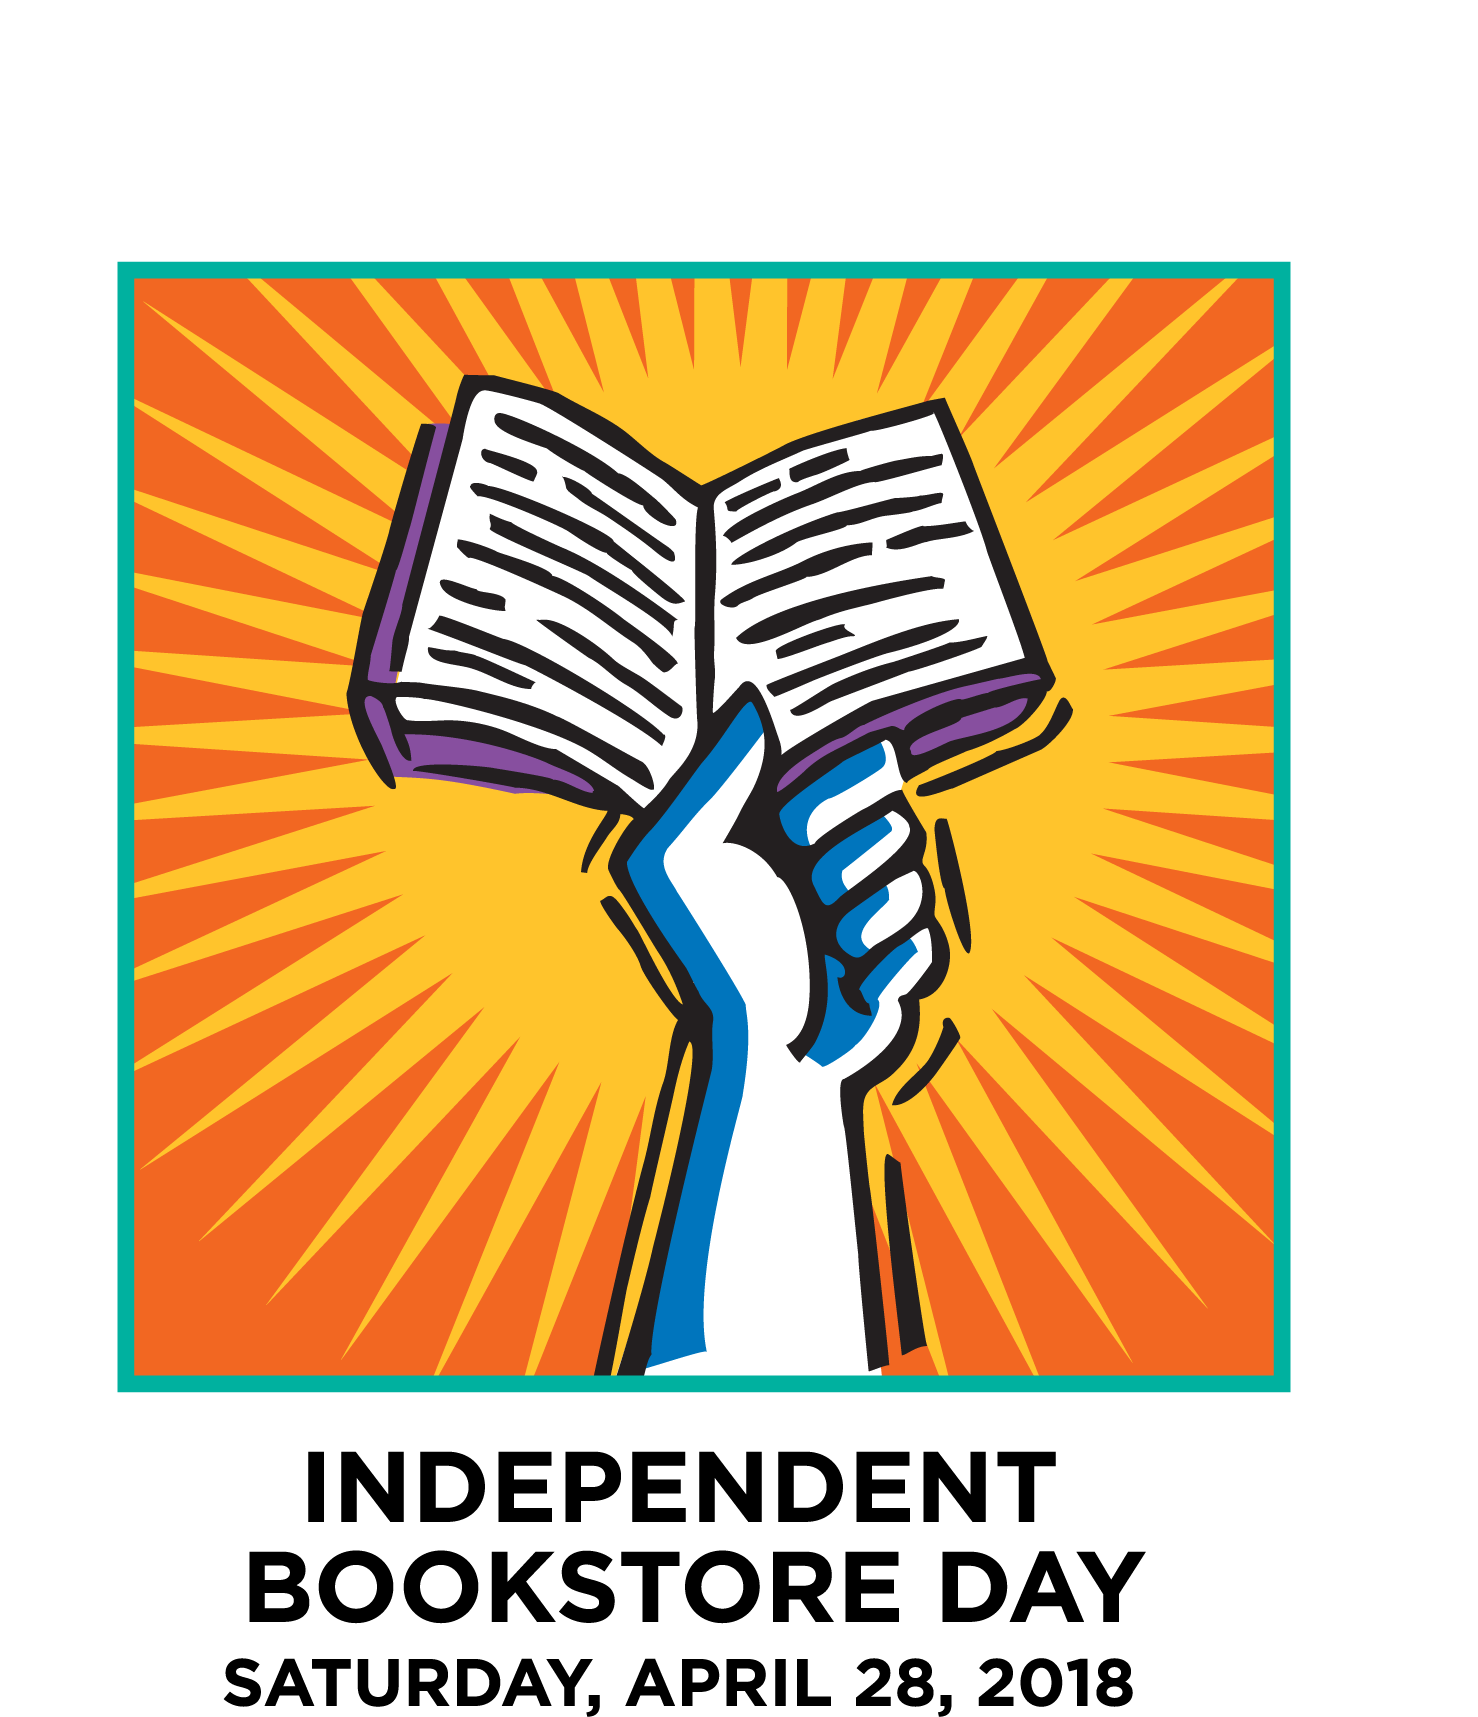 Independent Bookstore Day with Hasty Book List at the Novel Neighbor